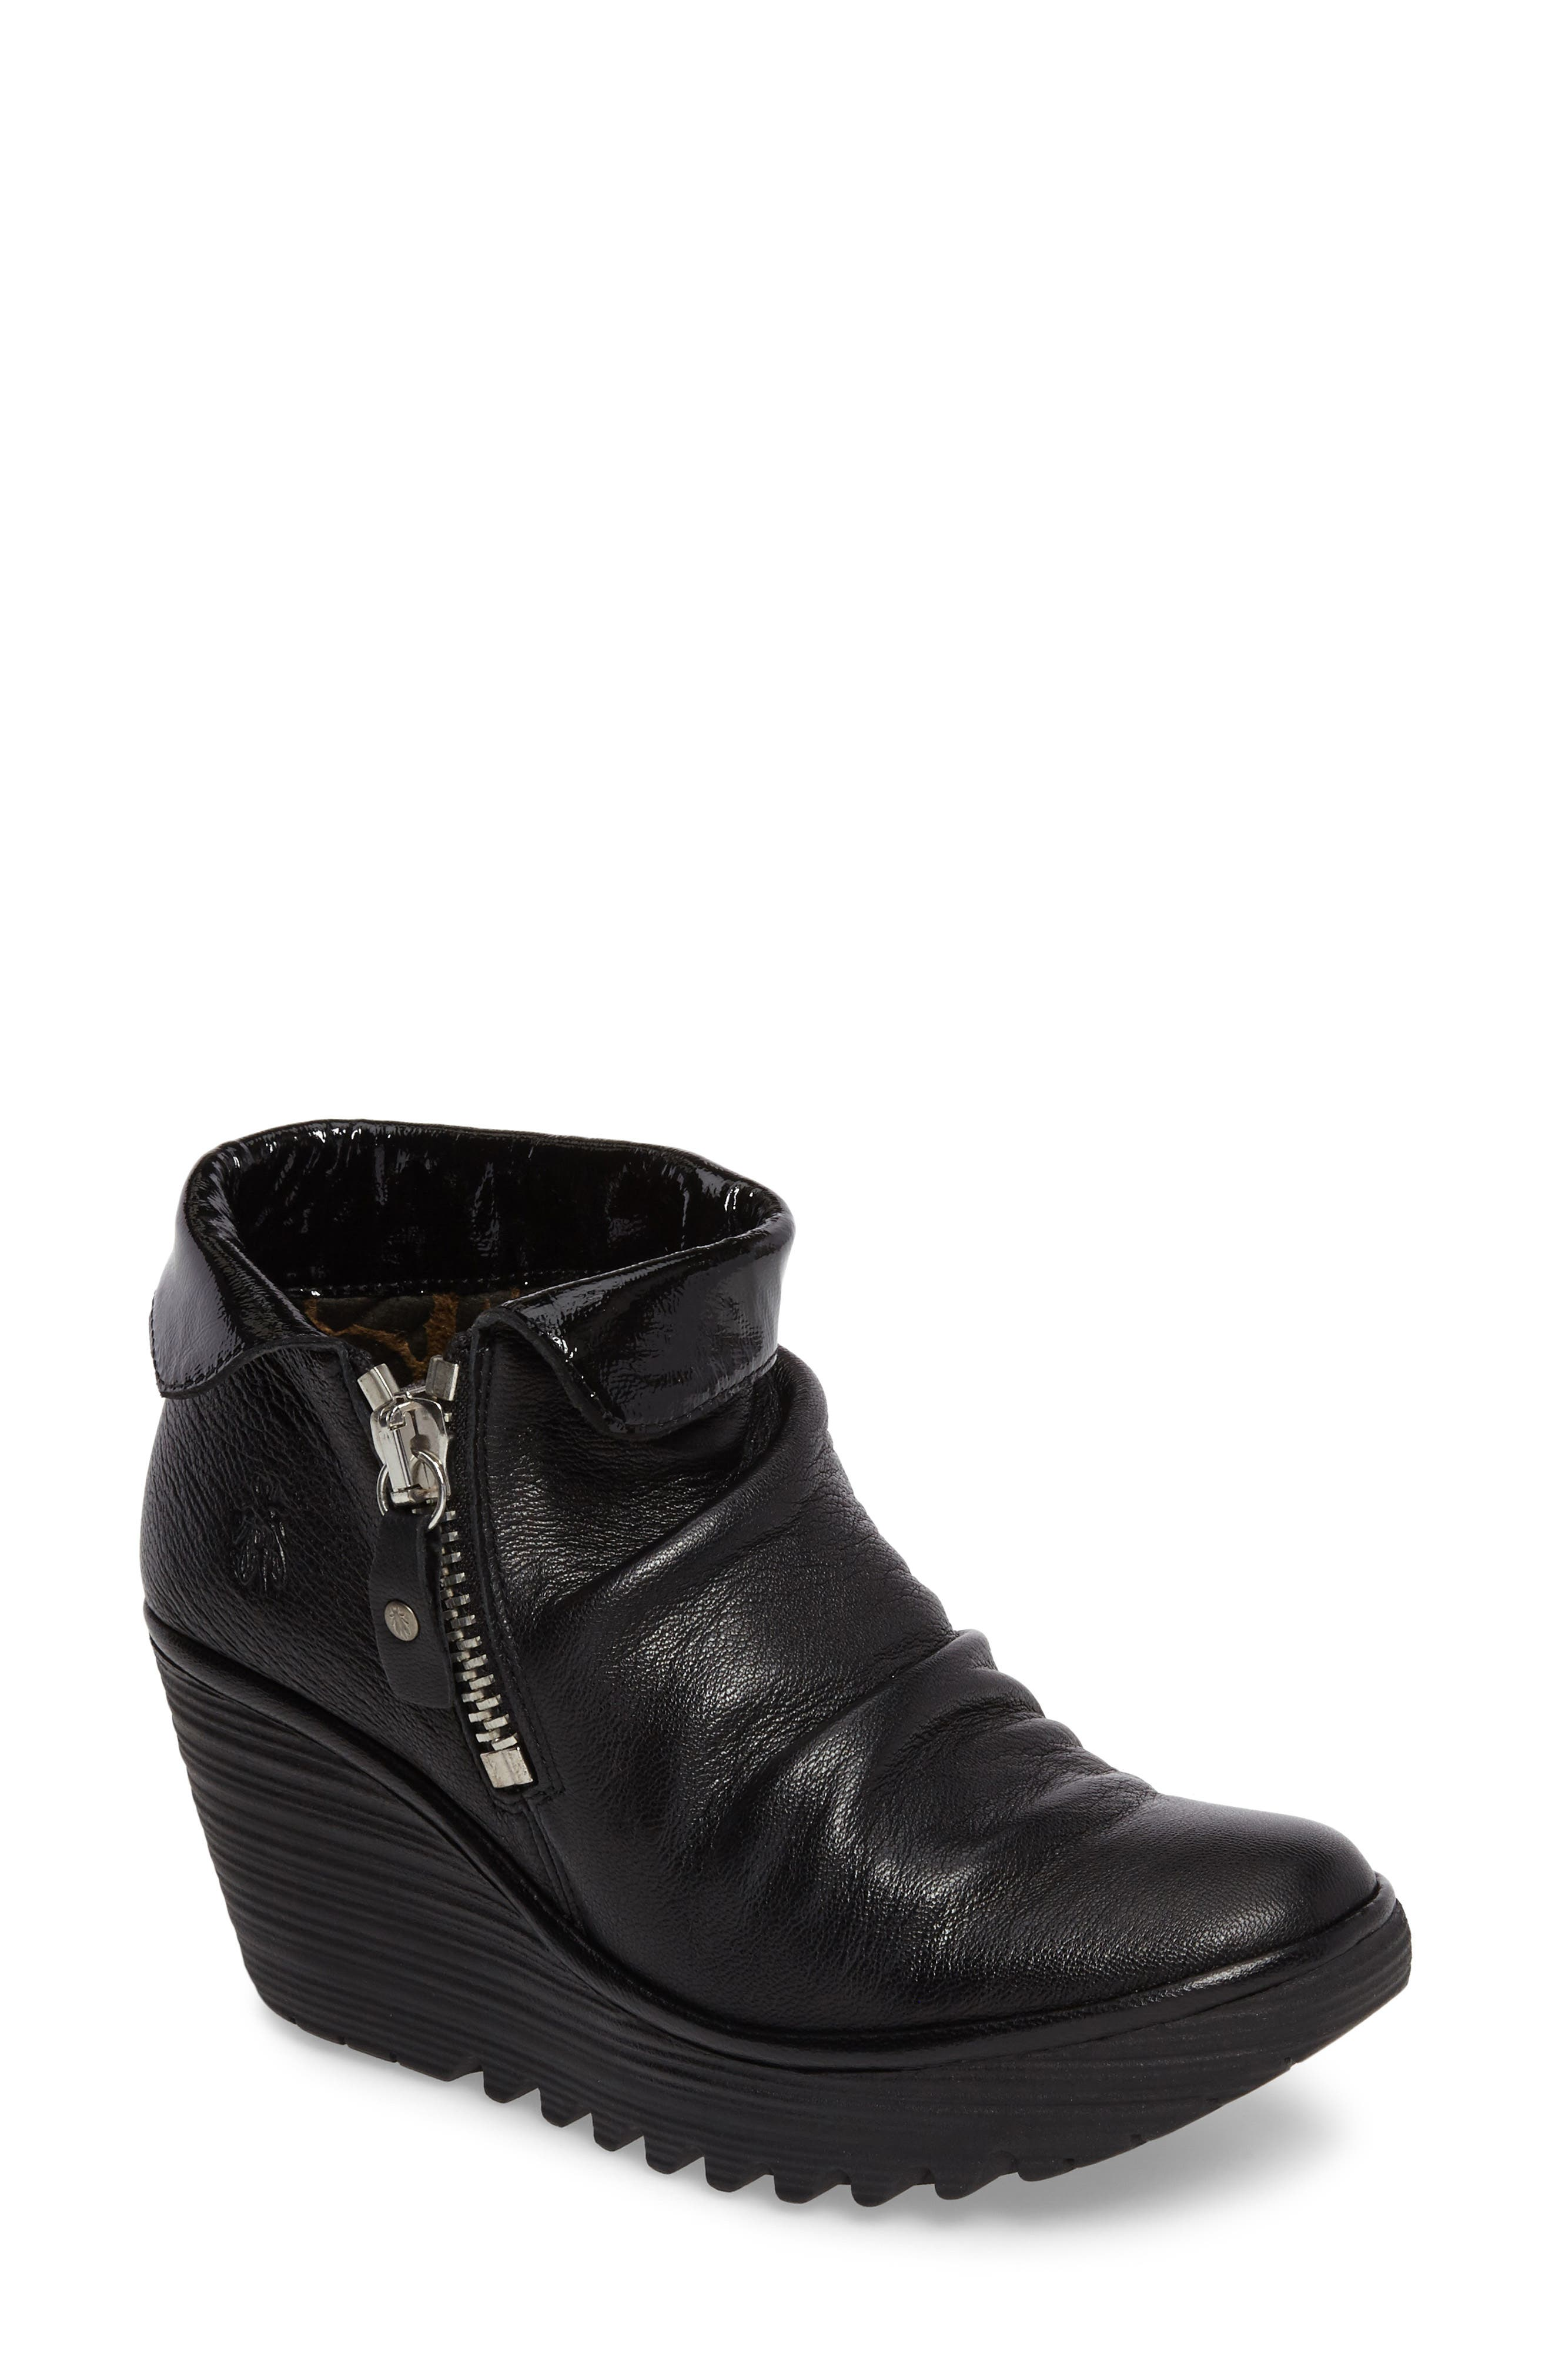 Yoxi Wedge Bootie,                             Main thumbnail 1, color,                             Black Leather